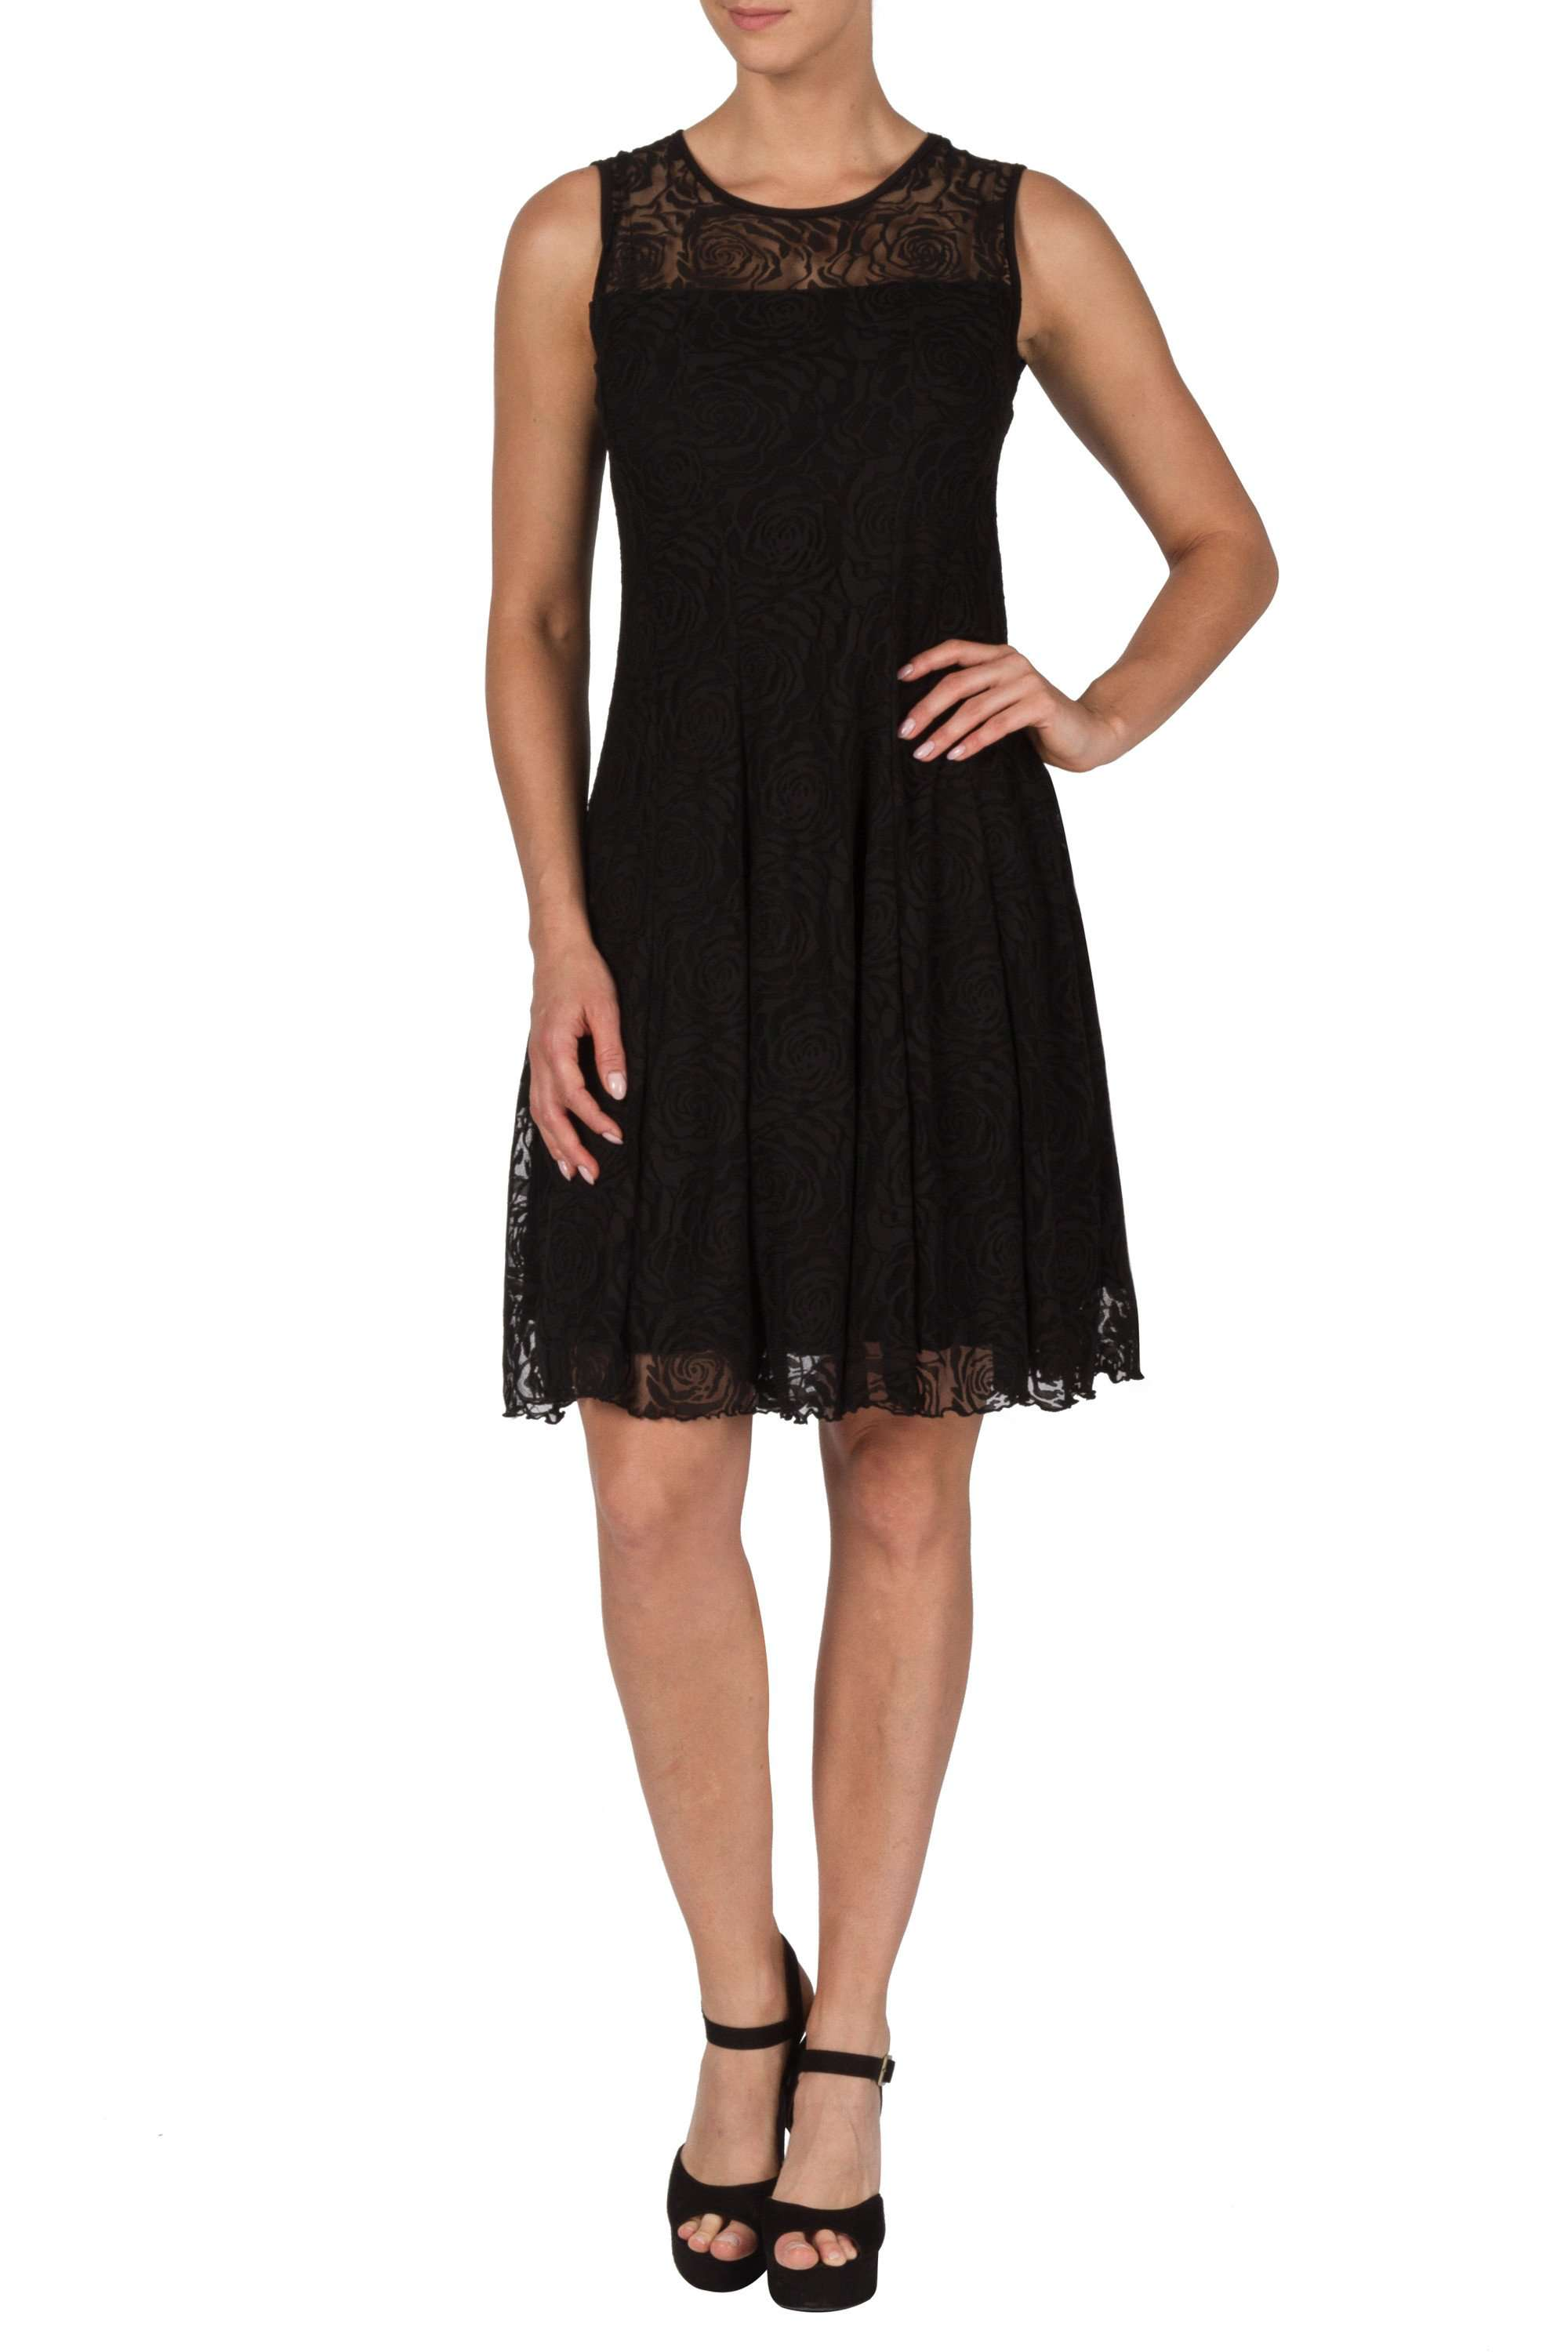 Dress Black Lace Best Fit Any Occasion - Yvonne Marie